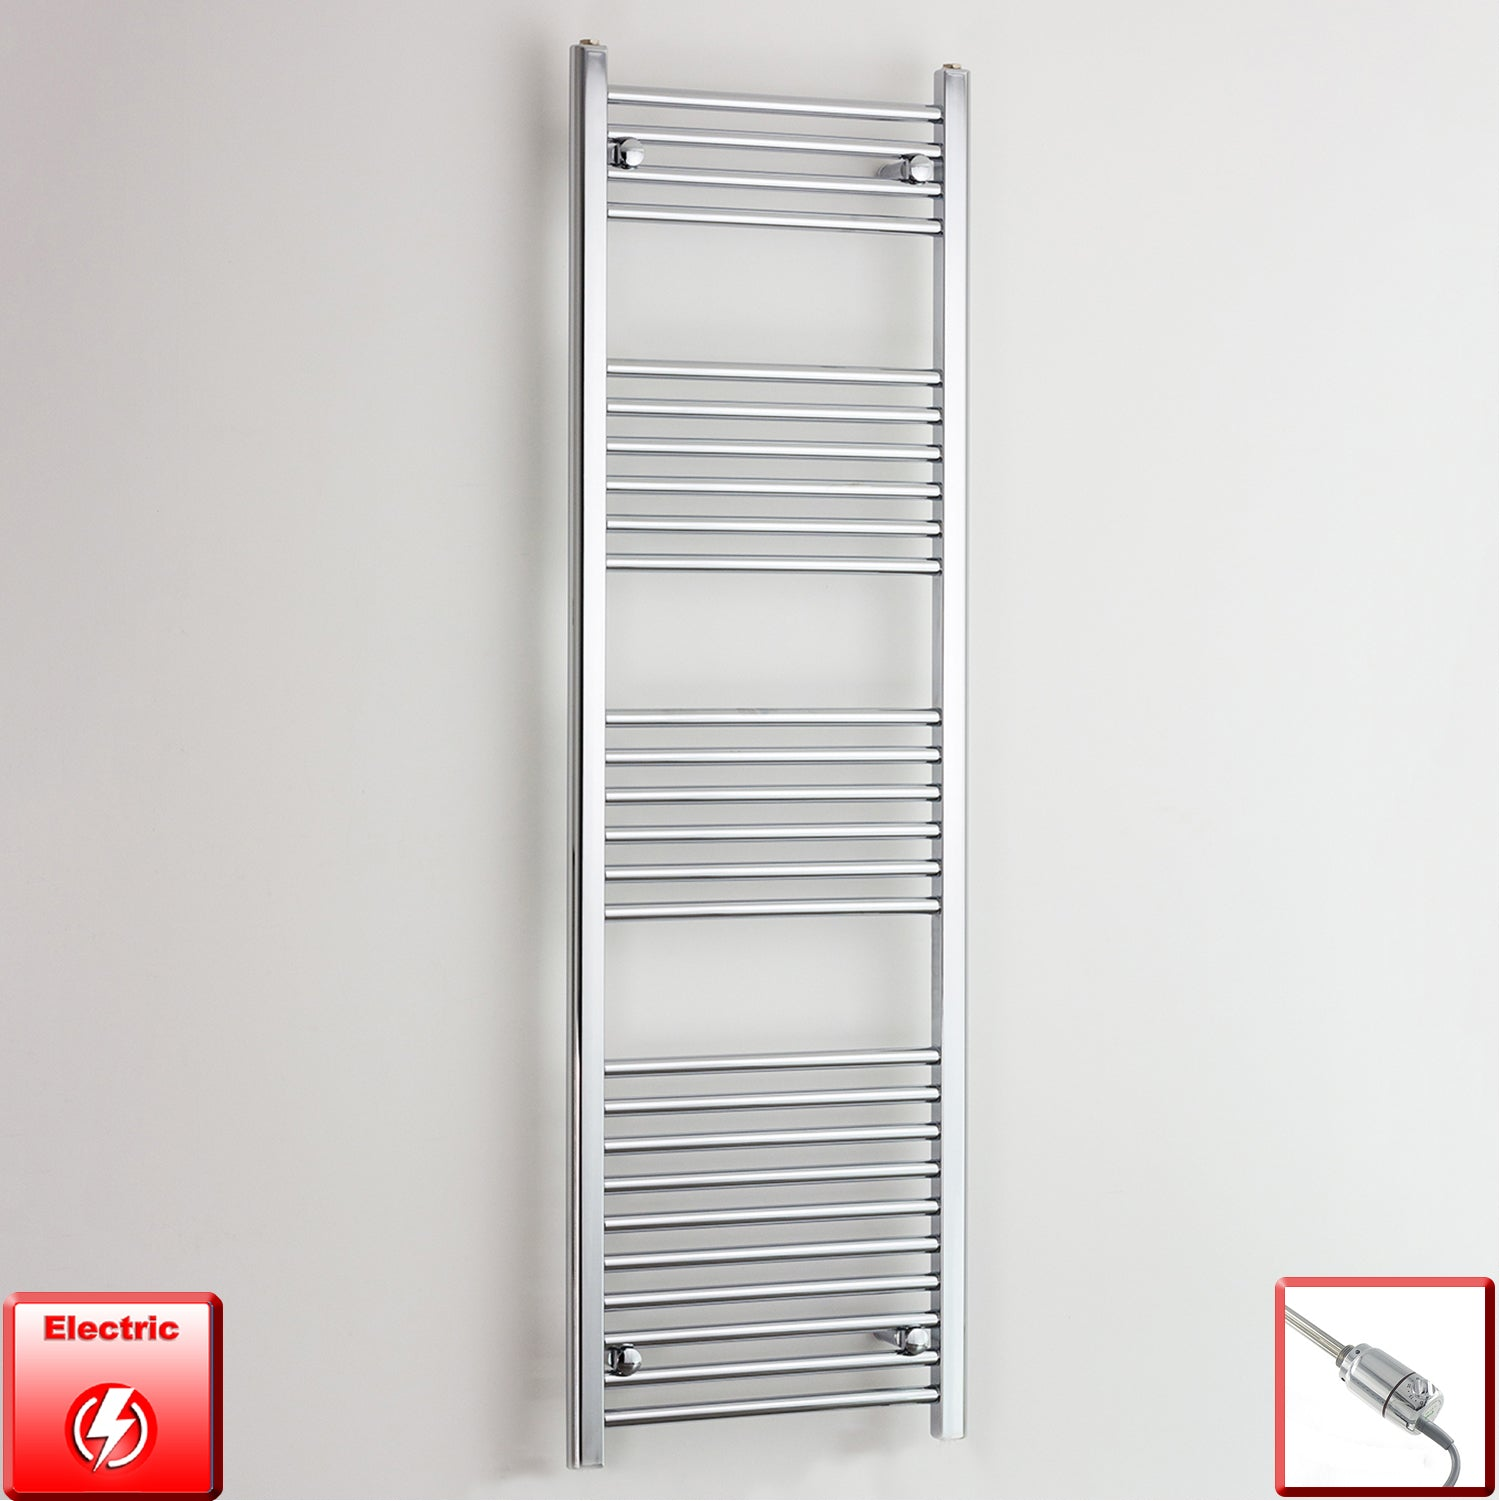 400mm Wide 1600mm High Straight Chrome Pre-Filled Electric Heated Towel Rail Radiator HTR